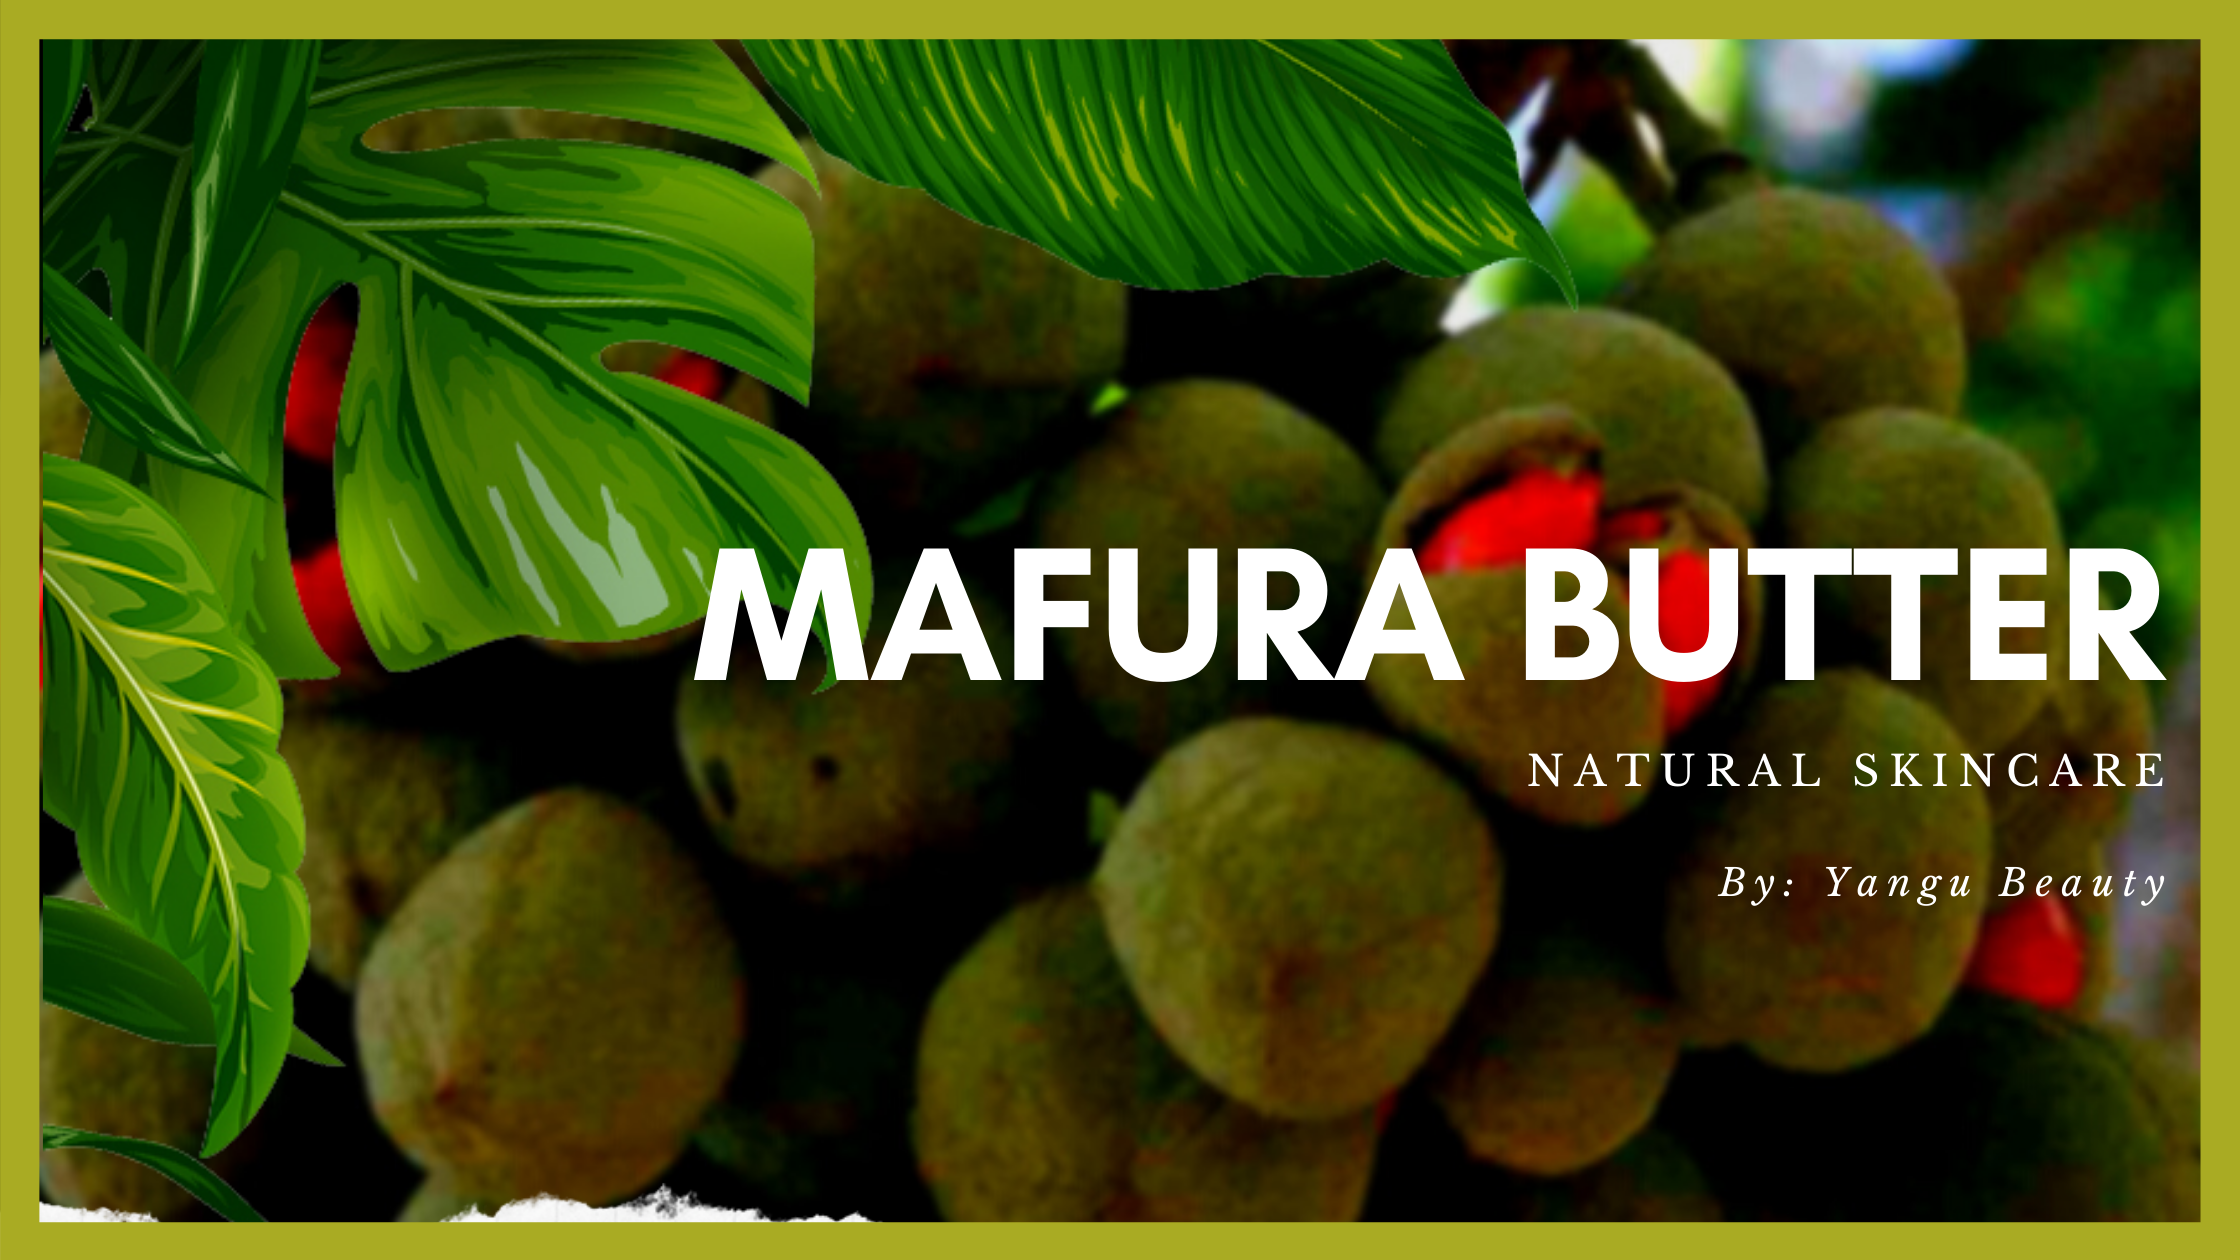 Mafura Butter - Yangu Beauty Natural Skincare